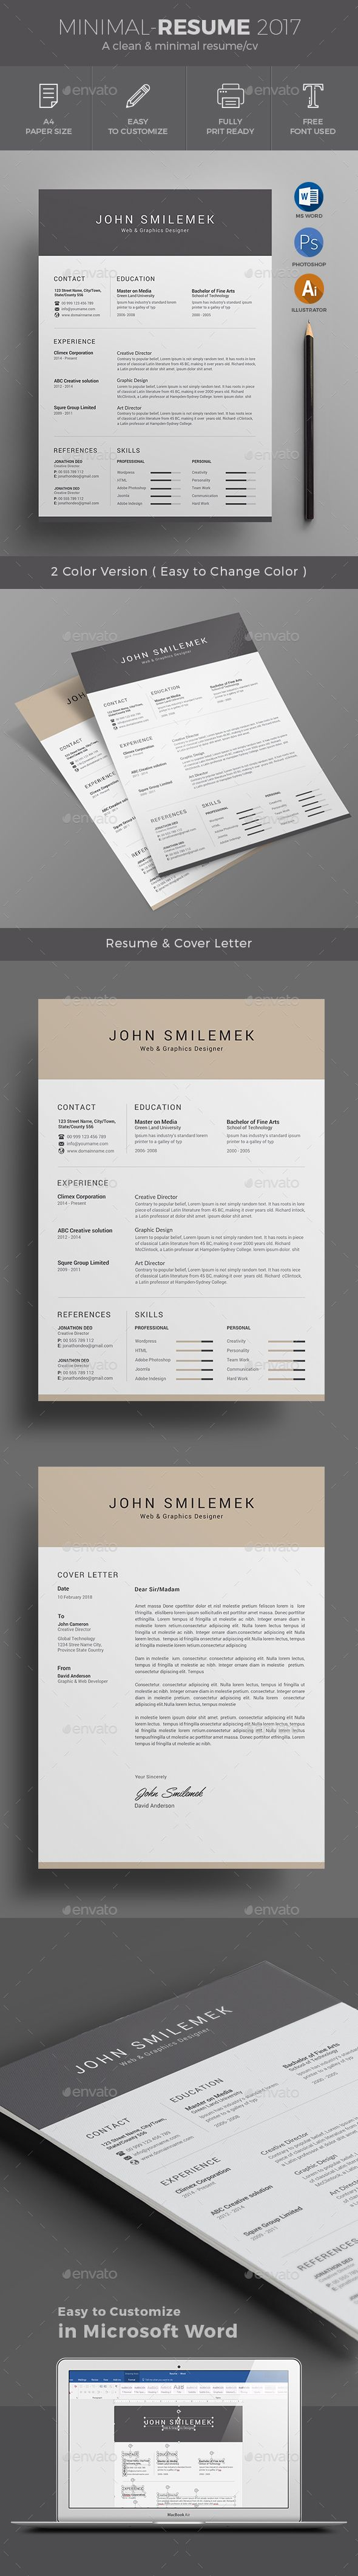 Resume | Free cover letter, Professional resume template and Resume cv